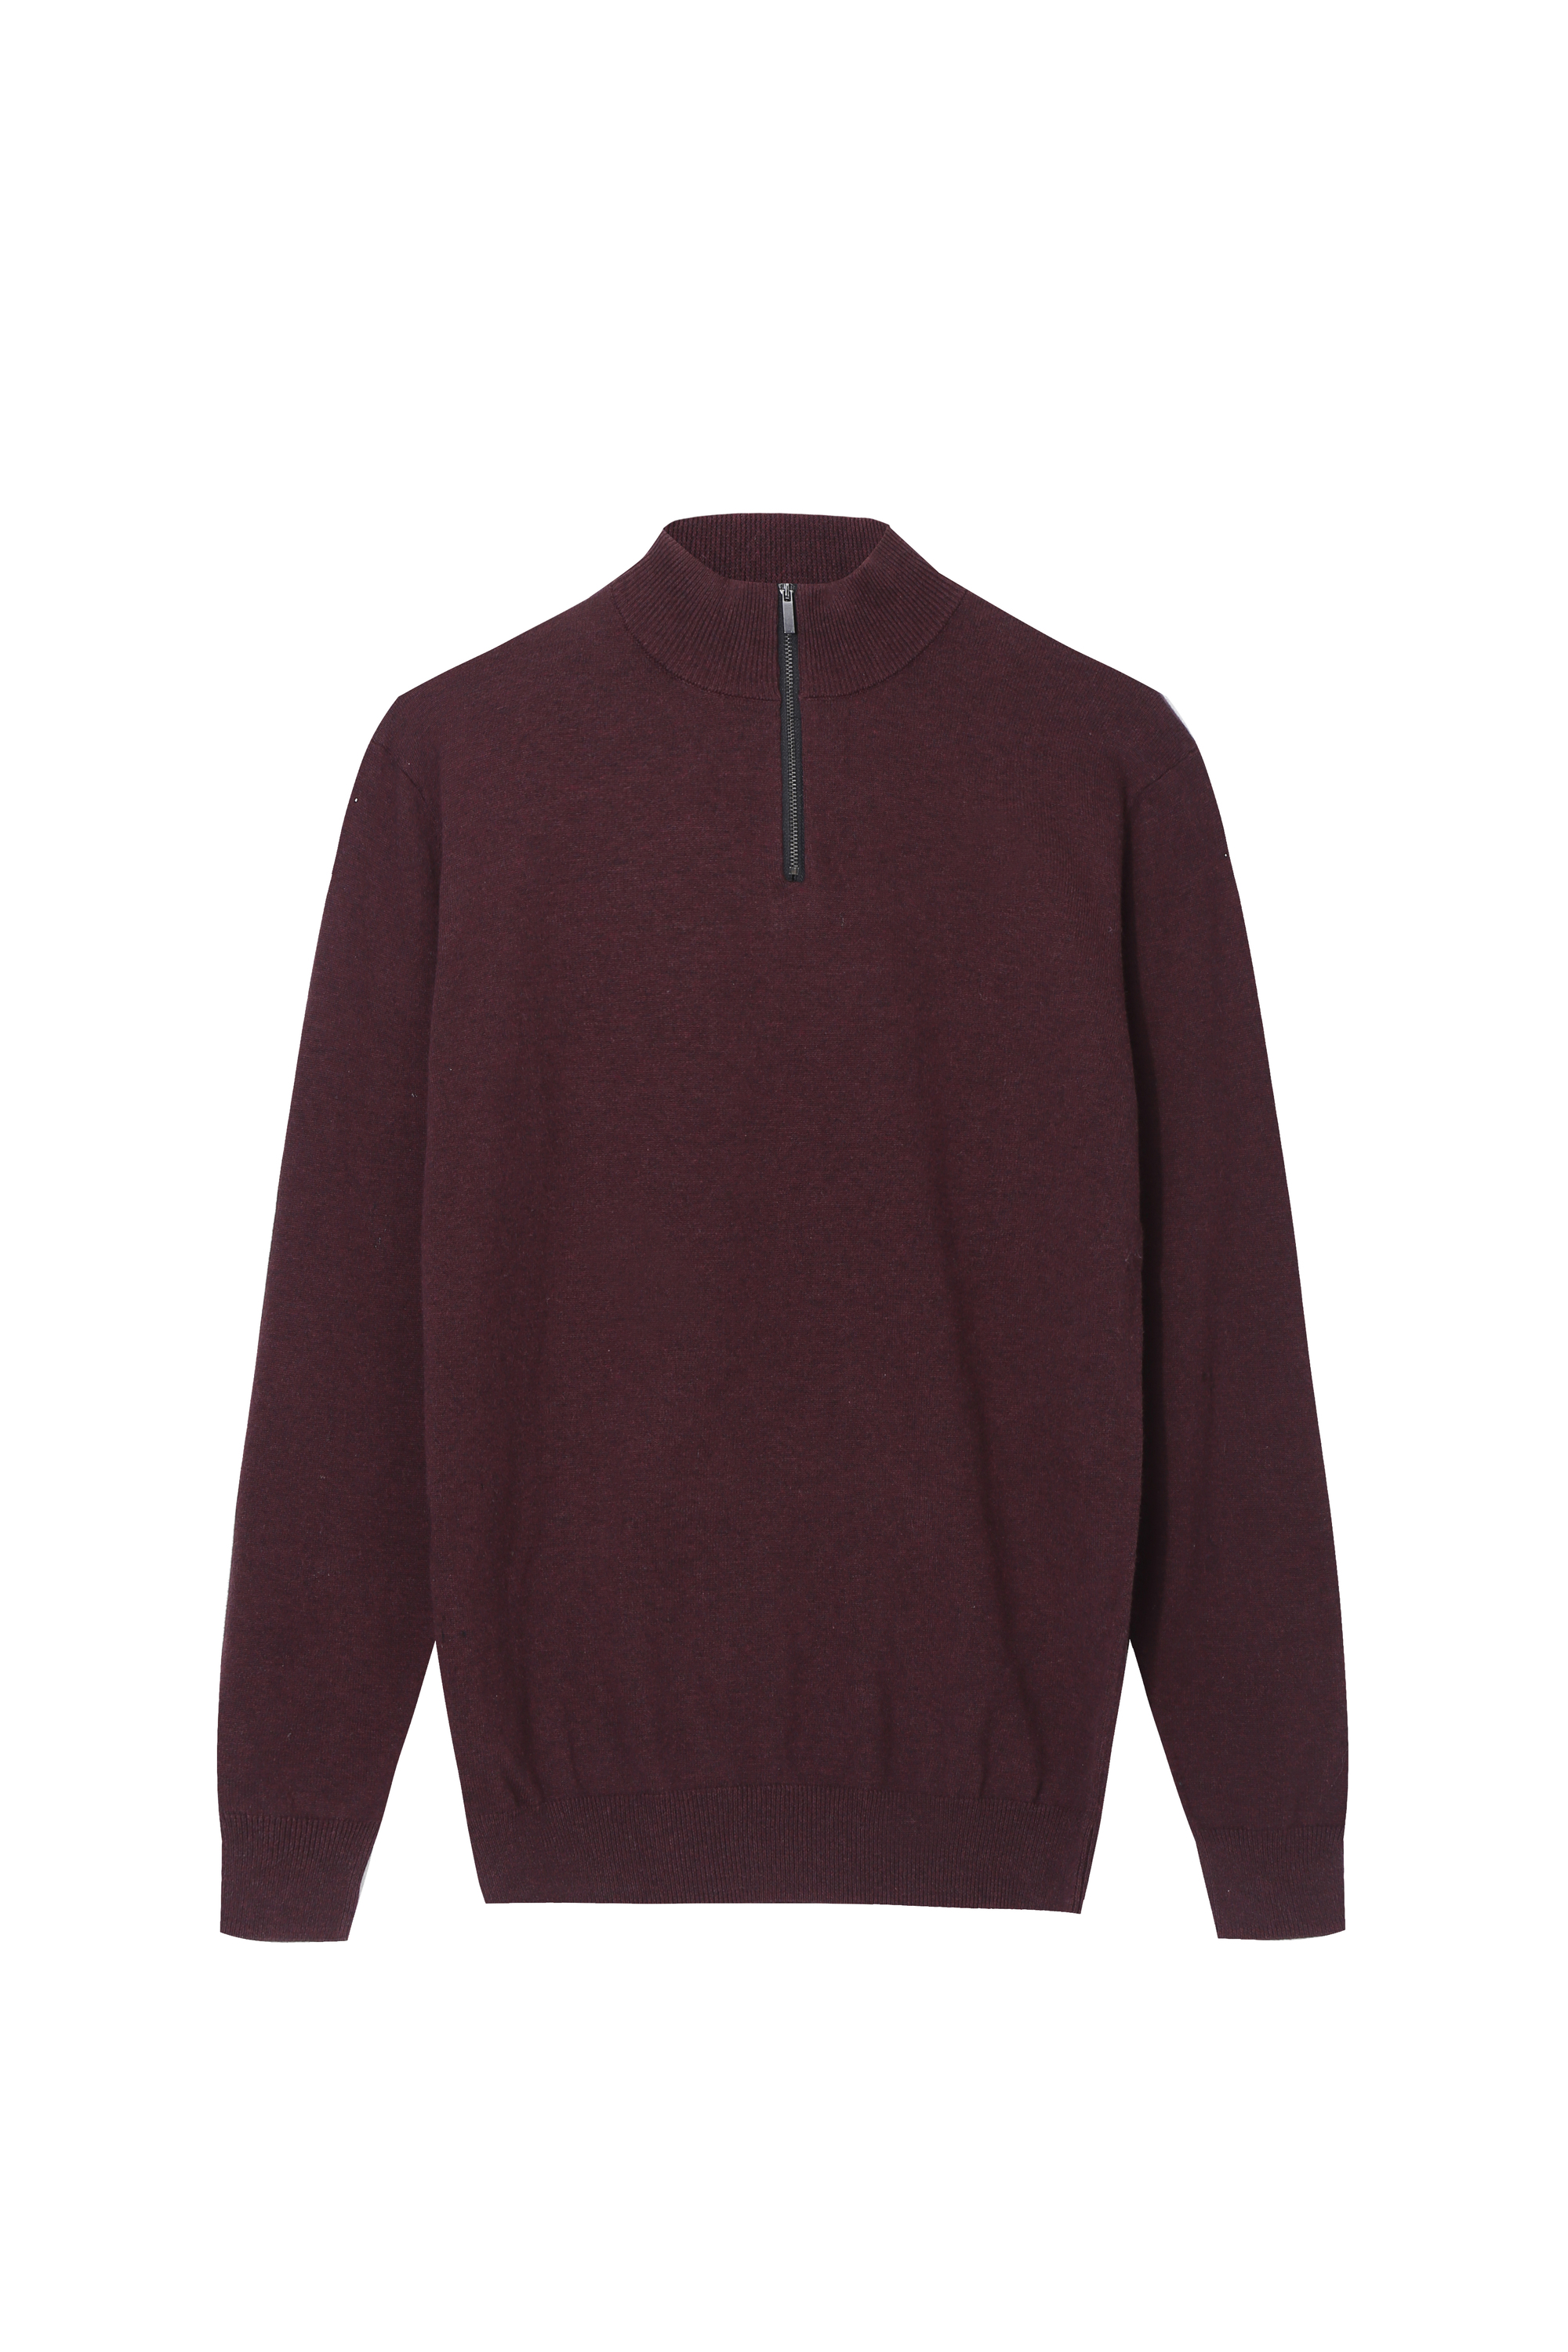 Men's Basic Quarter Zip Sweater Mock neck Pullover